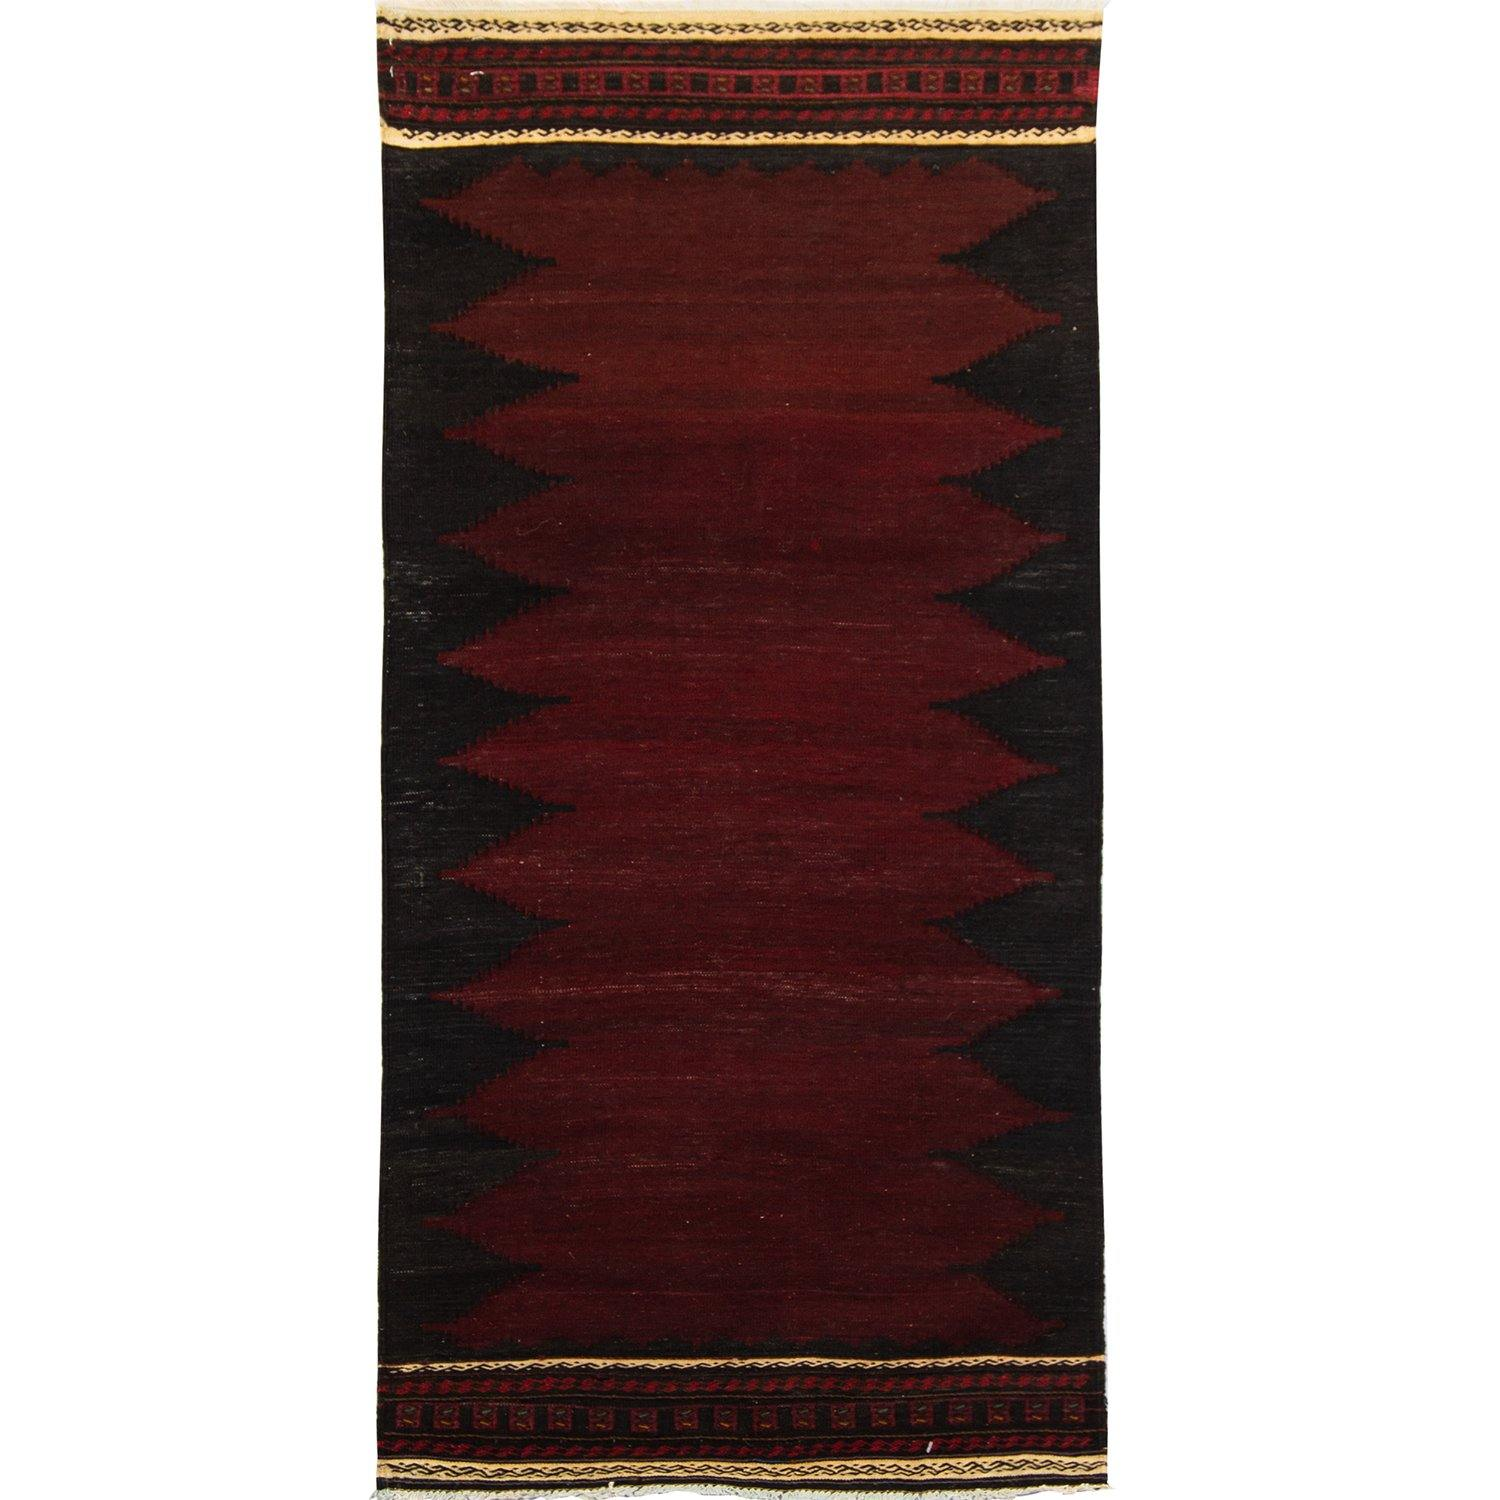 Fine Hand-woven 100% Wool Kilim 60cm x 169cm Persian-Rug | House-of-Haghi | NewMarket | Auckland | NZ | Handmade Persian Rugs | Hand Knotted Persian Rugs